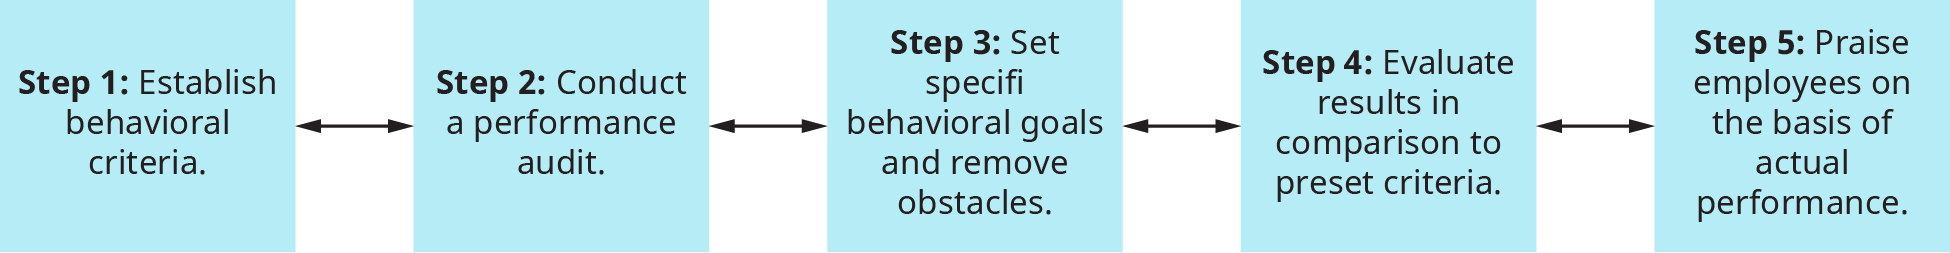 A diagram illustrates the steps involved in implementing a behavior modification program.